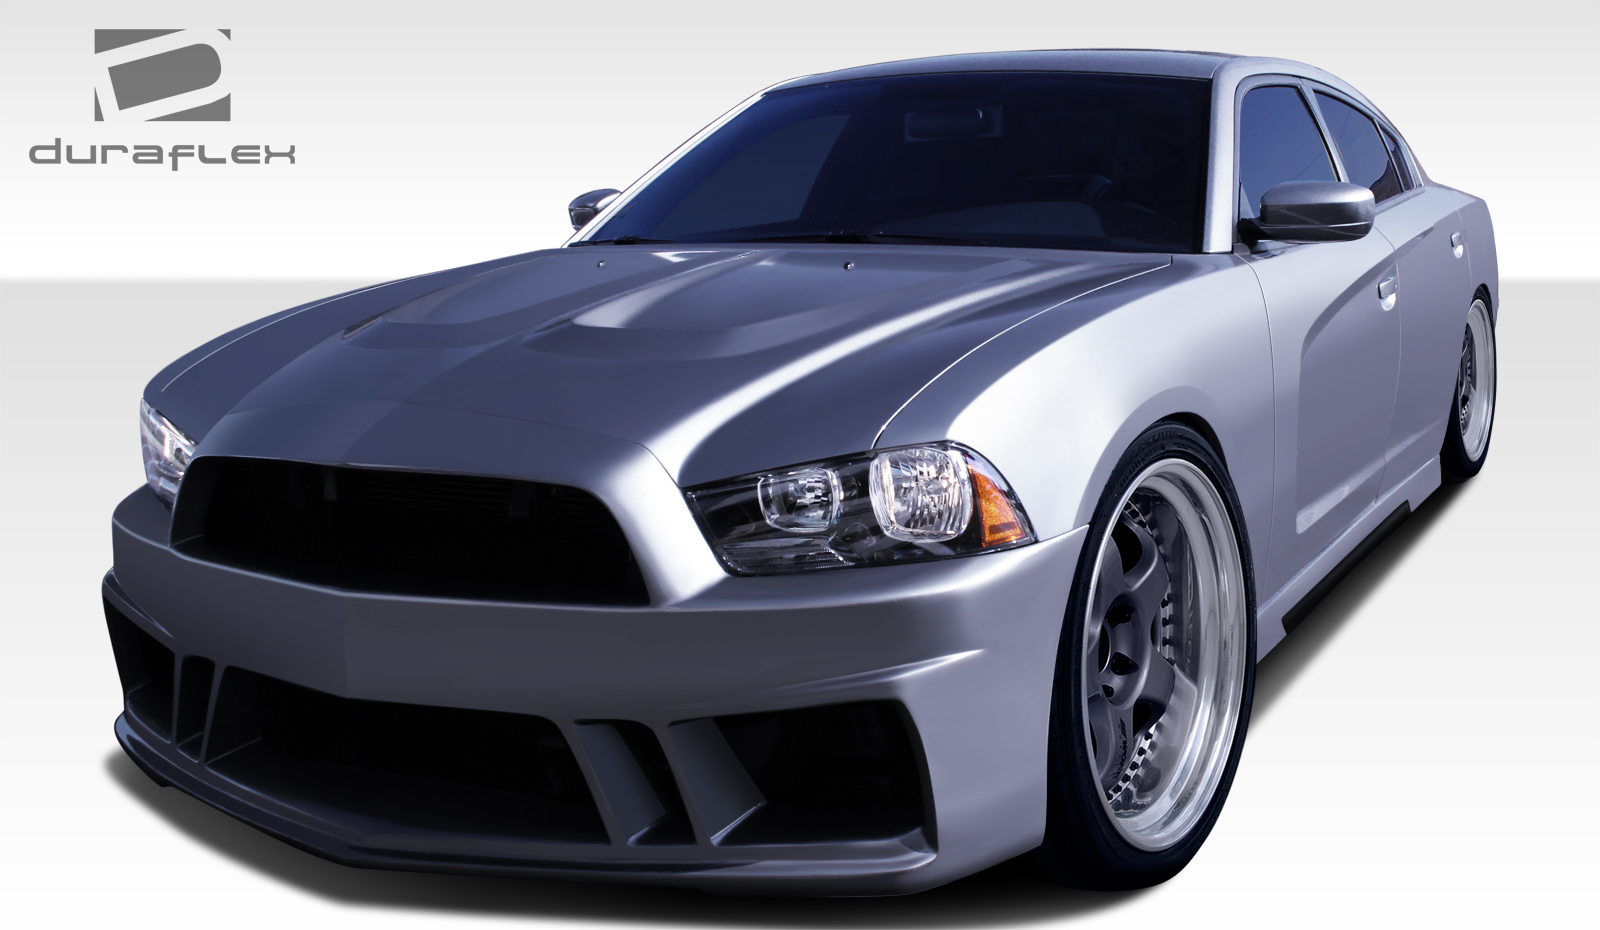 extreme dimensions 2011 2014 dodge charger duraflex hot wheels body kit 4 p. Cars Review. Best American Auto & Cars Review